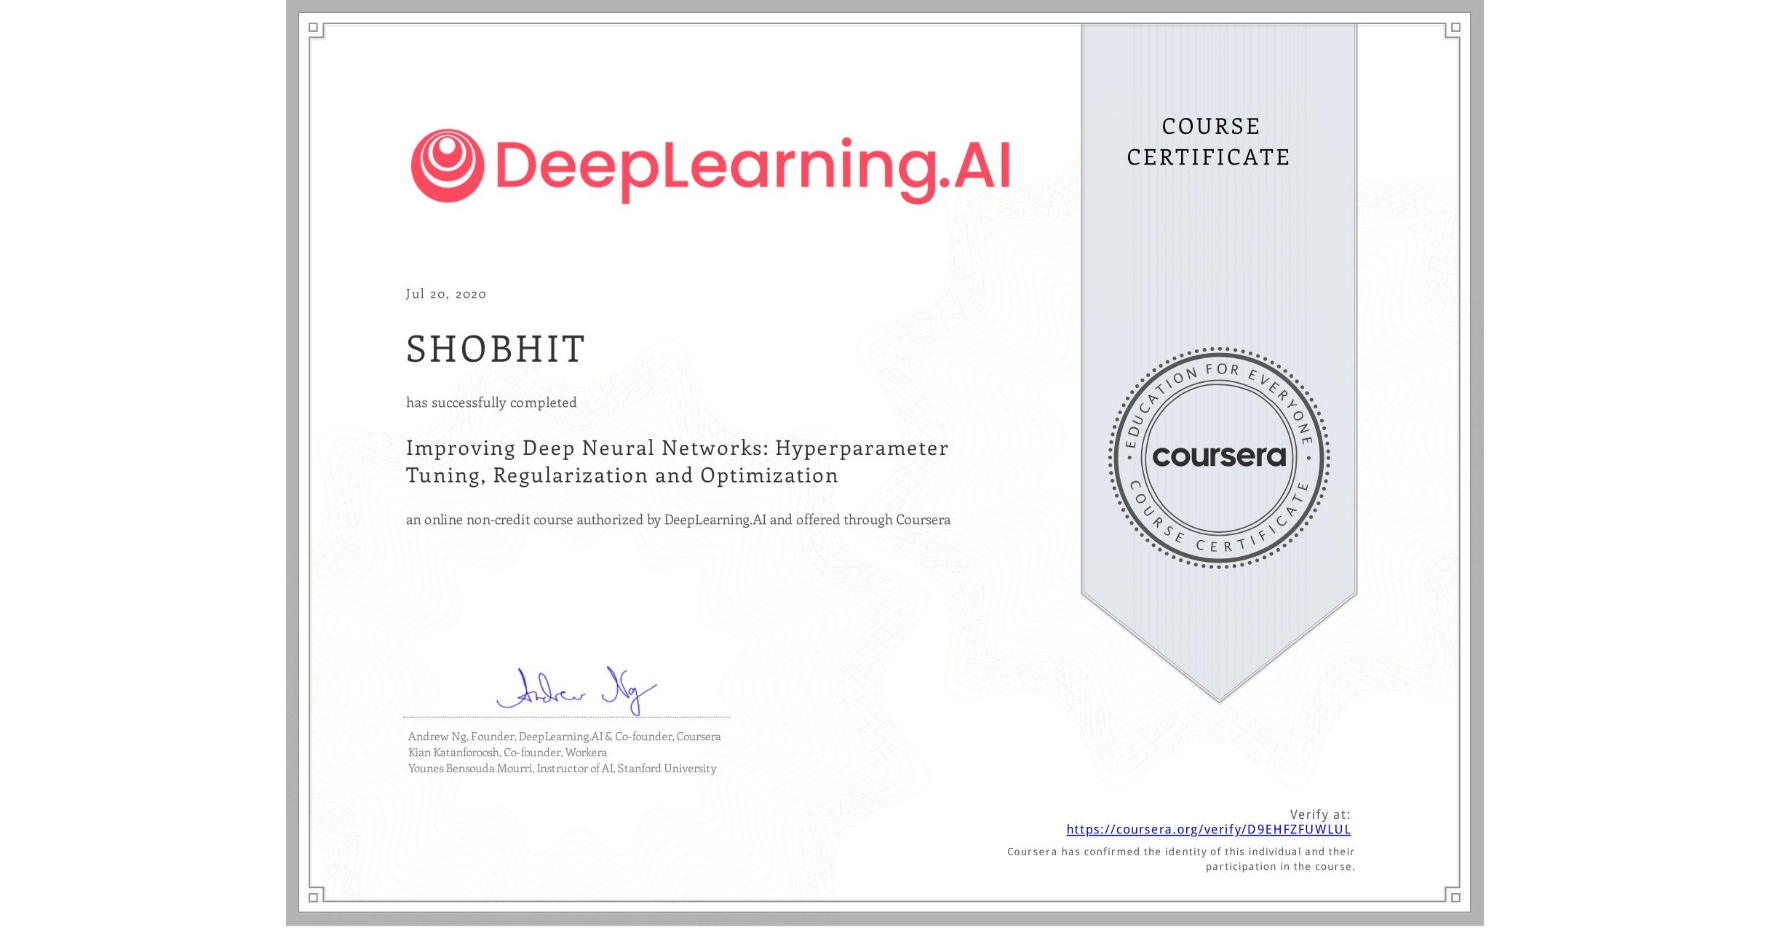 View certificate for SHOBHIT , Improving Deep Neural Networks: Hyperparameter Tuning, Regularization and Optimization, an online non-credit course authorized by DeepLearning.AI and offered through Coursera